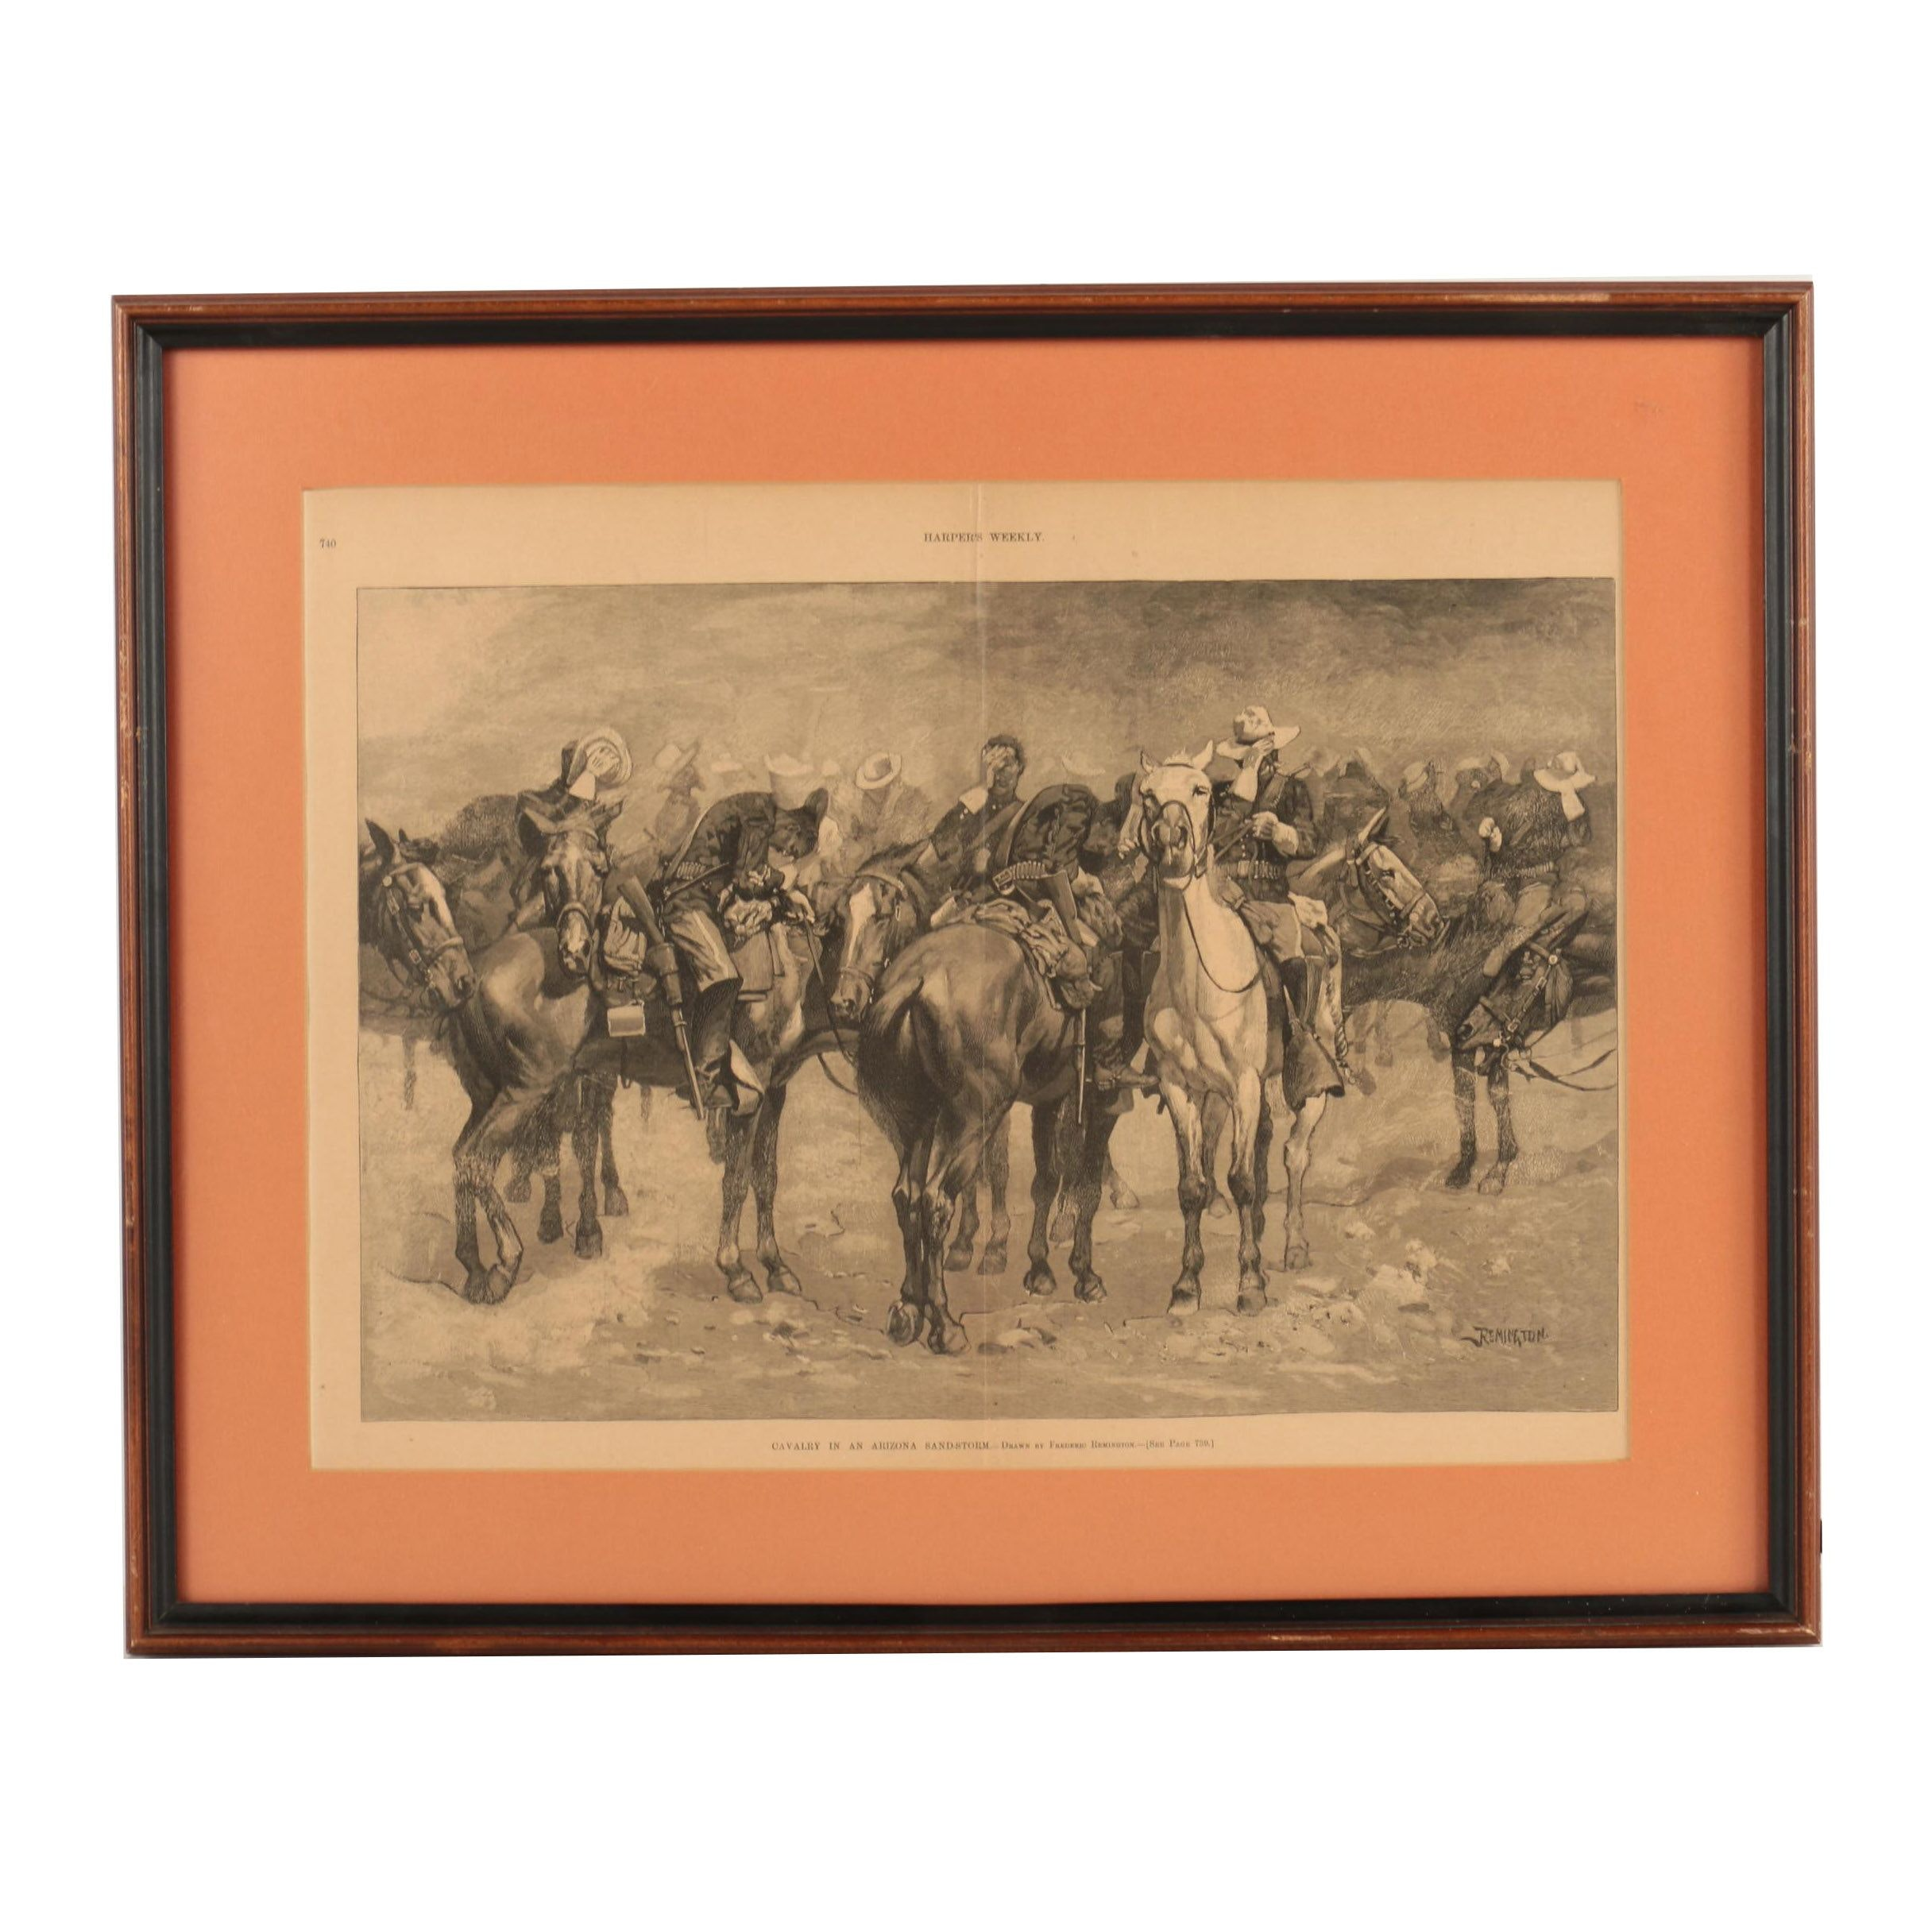 Wood Engraving After Frederic Remington from Harper's Weekly